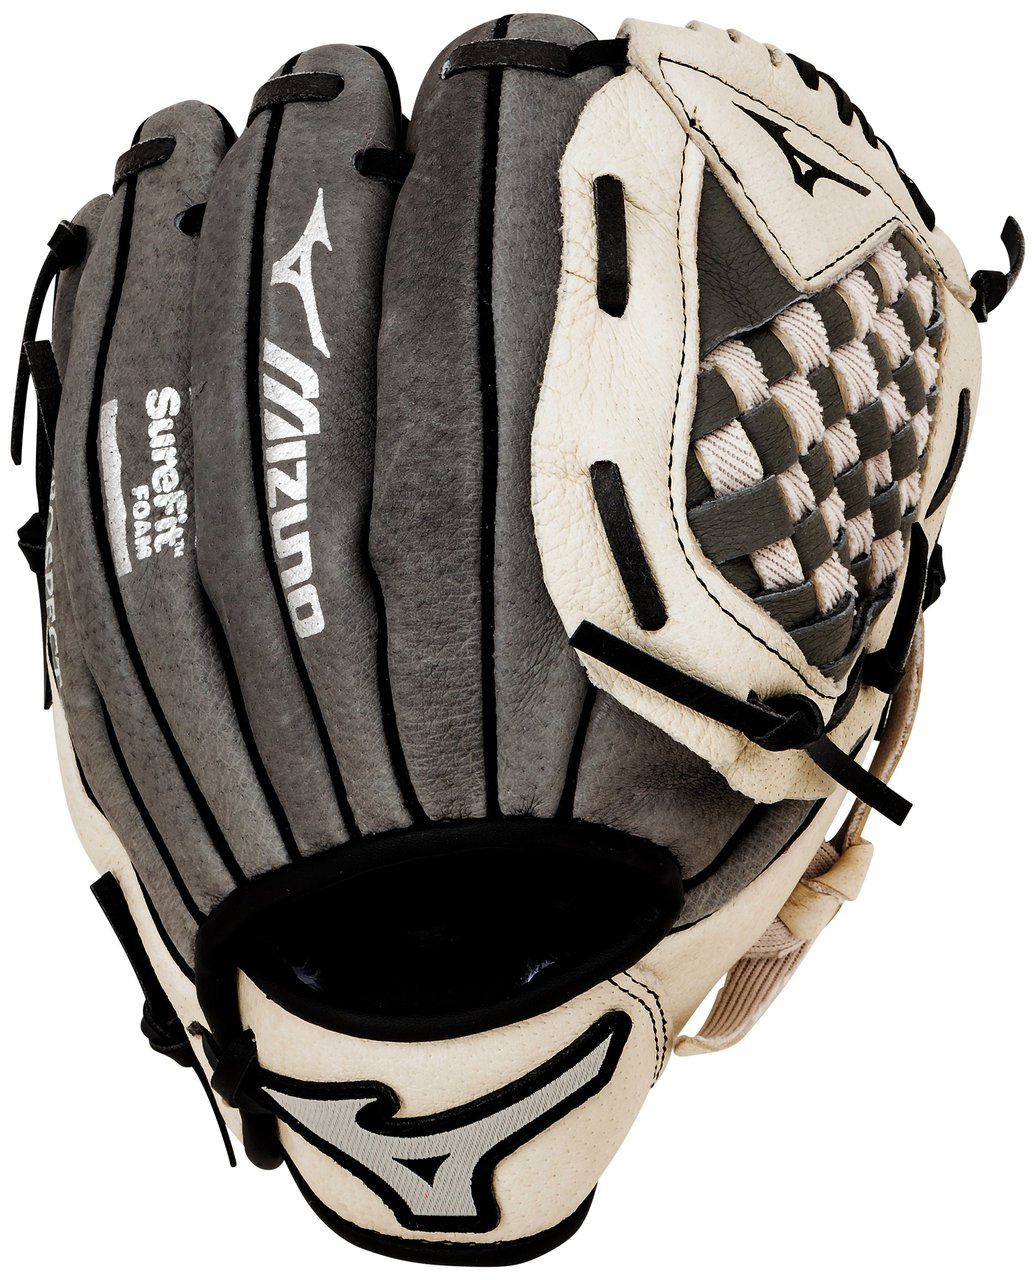 mizuno-prospect-gpp900y1gy-grey-9-inch-youth-baseball-glove-right-hand-throw GPP900Y1GY-Right Hand Throw Mizuno 041969127933 Mizuno Prospect Series Youth Gloves. Patented Power Close makes catching easy.